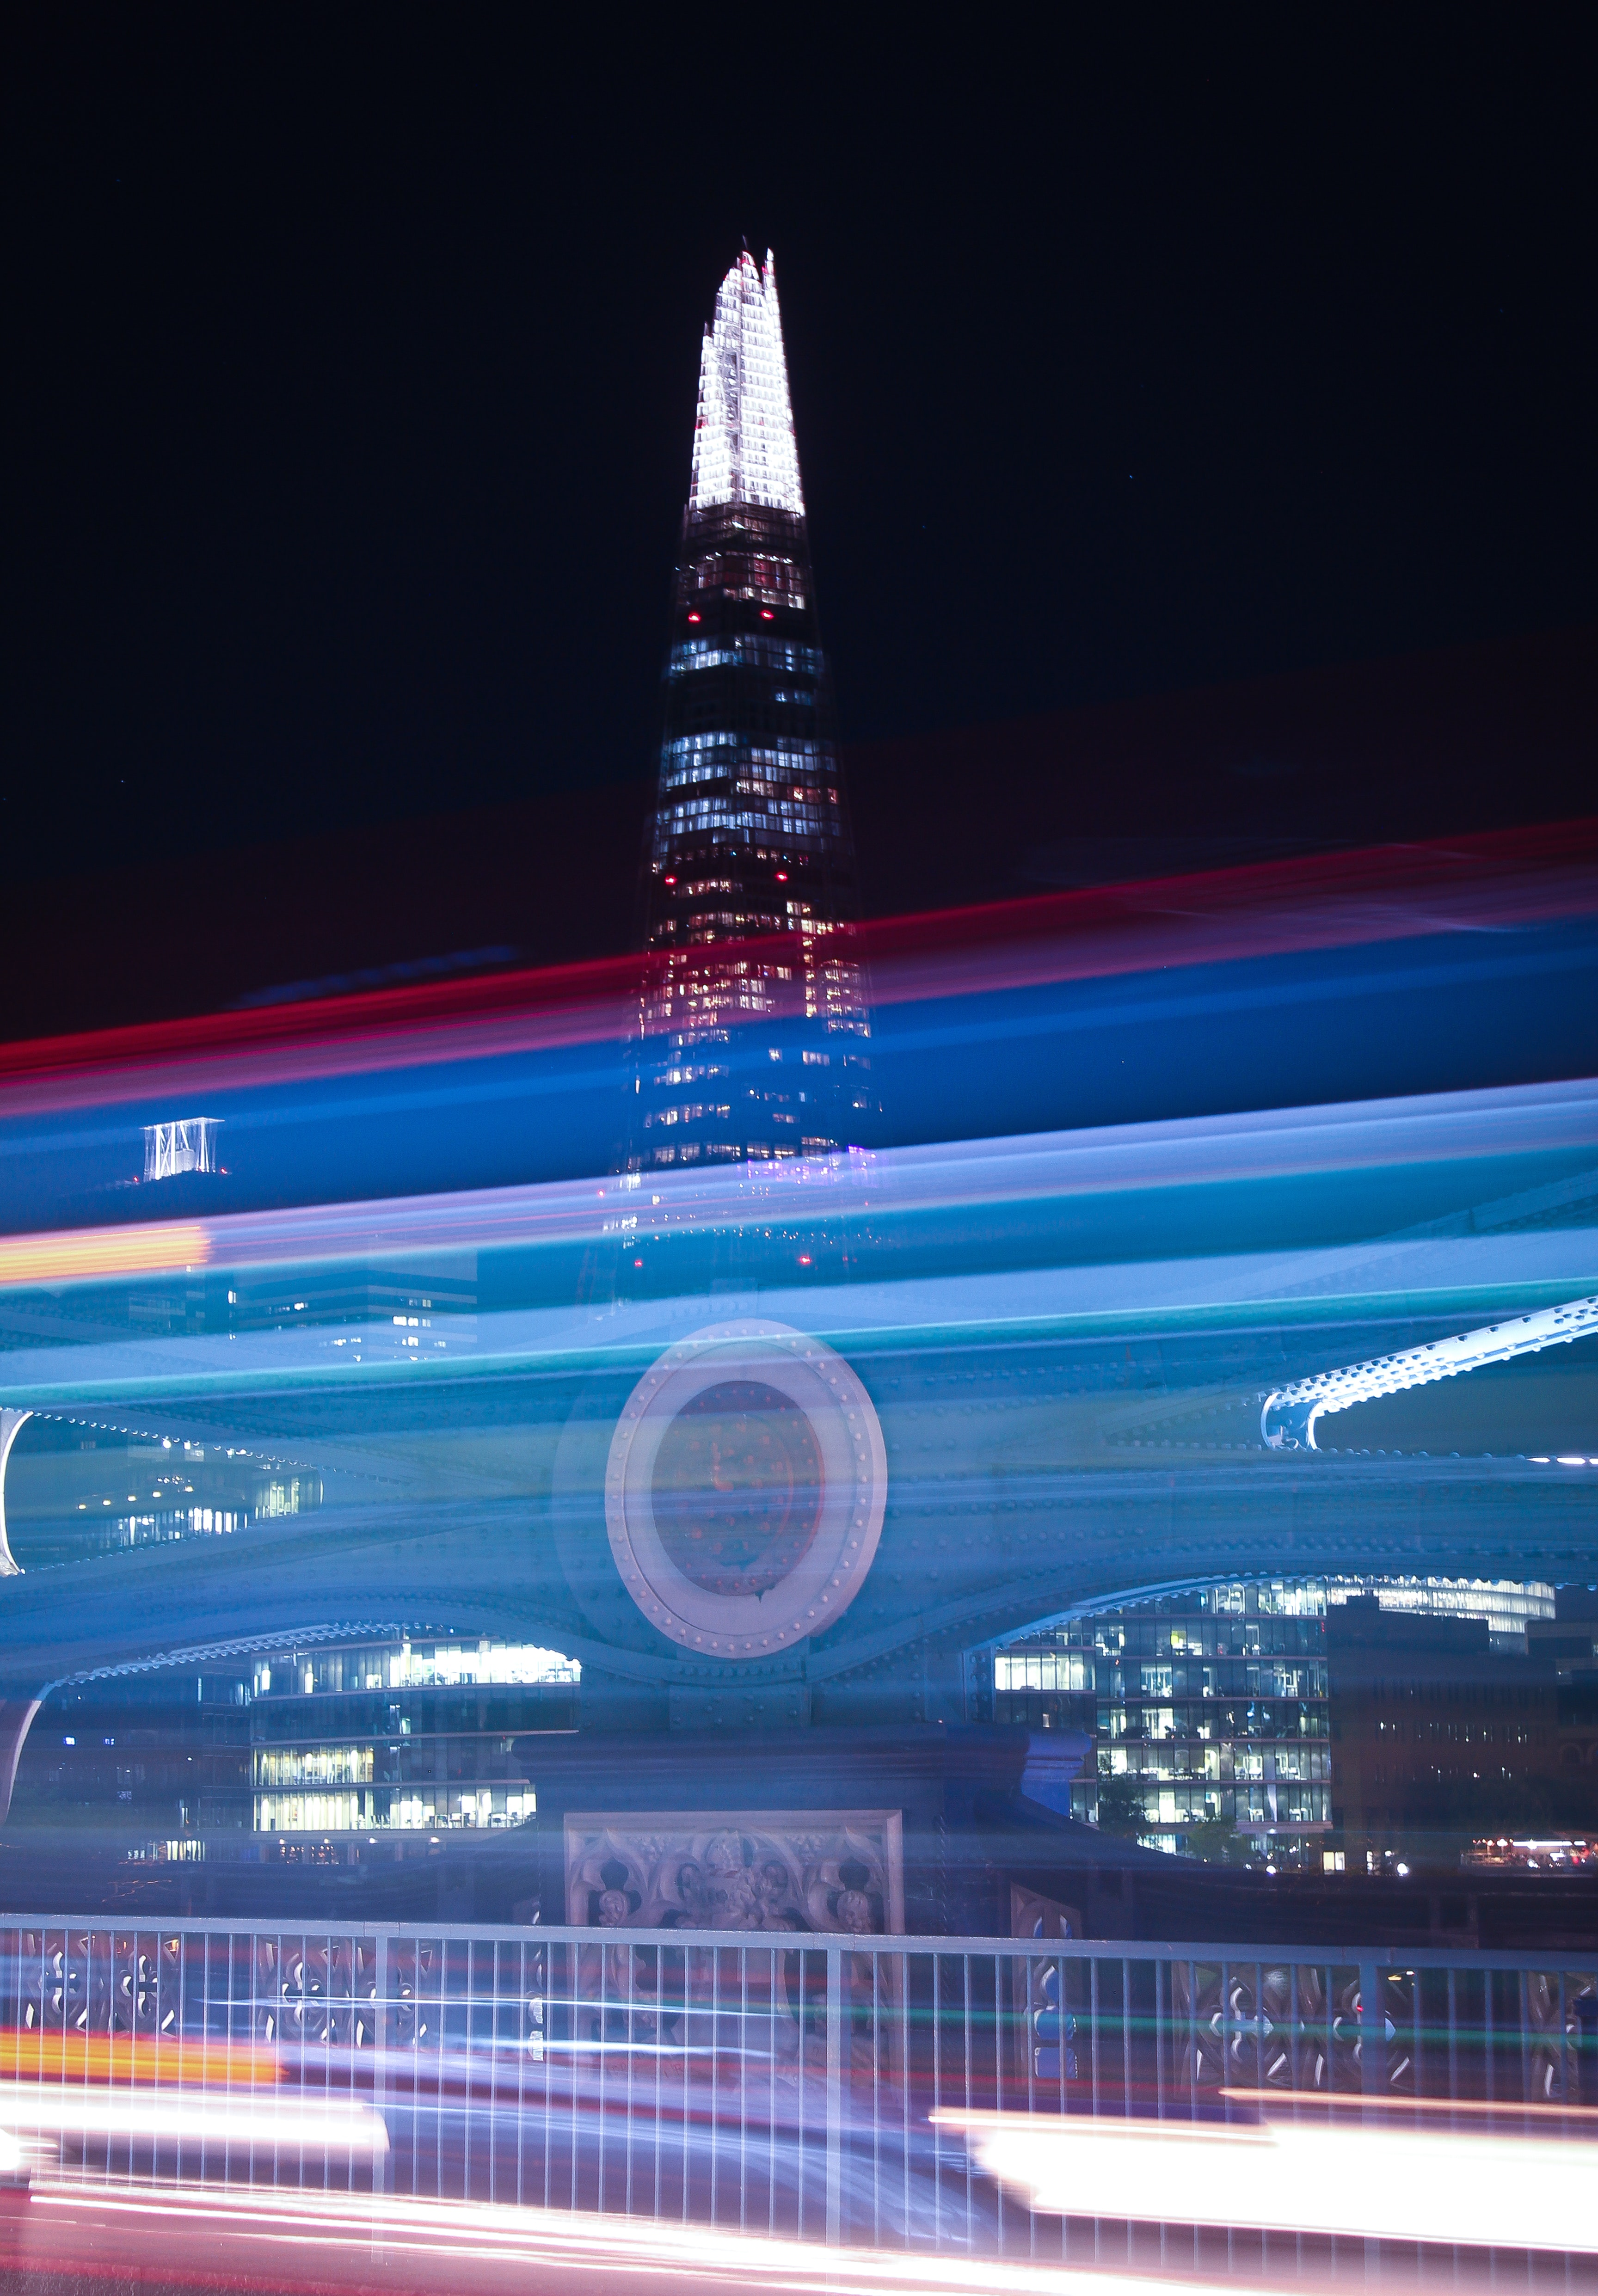 Photo of the Shard Building during Night Time, Architecture, Motion, Time-lapse, Street, HQ Photo